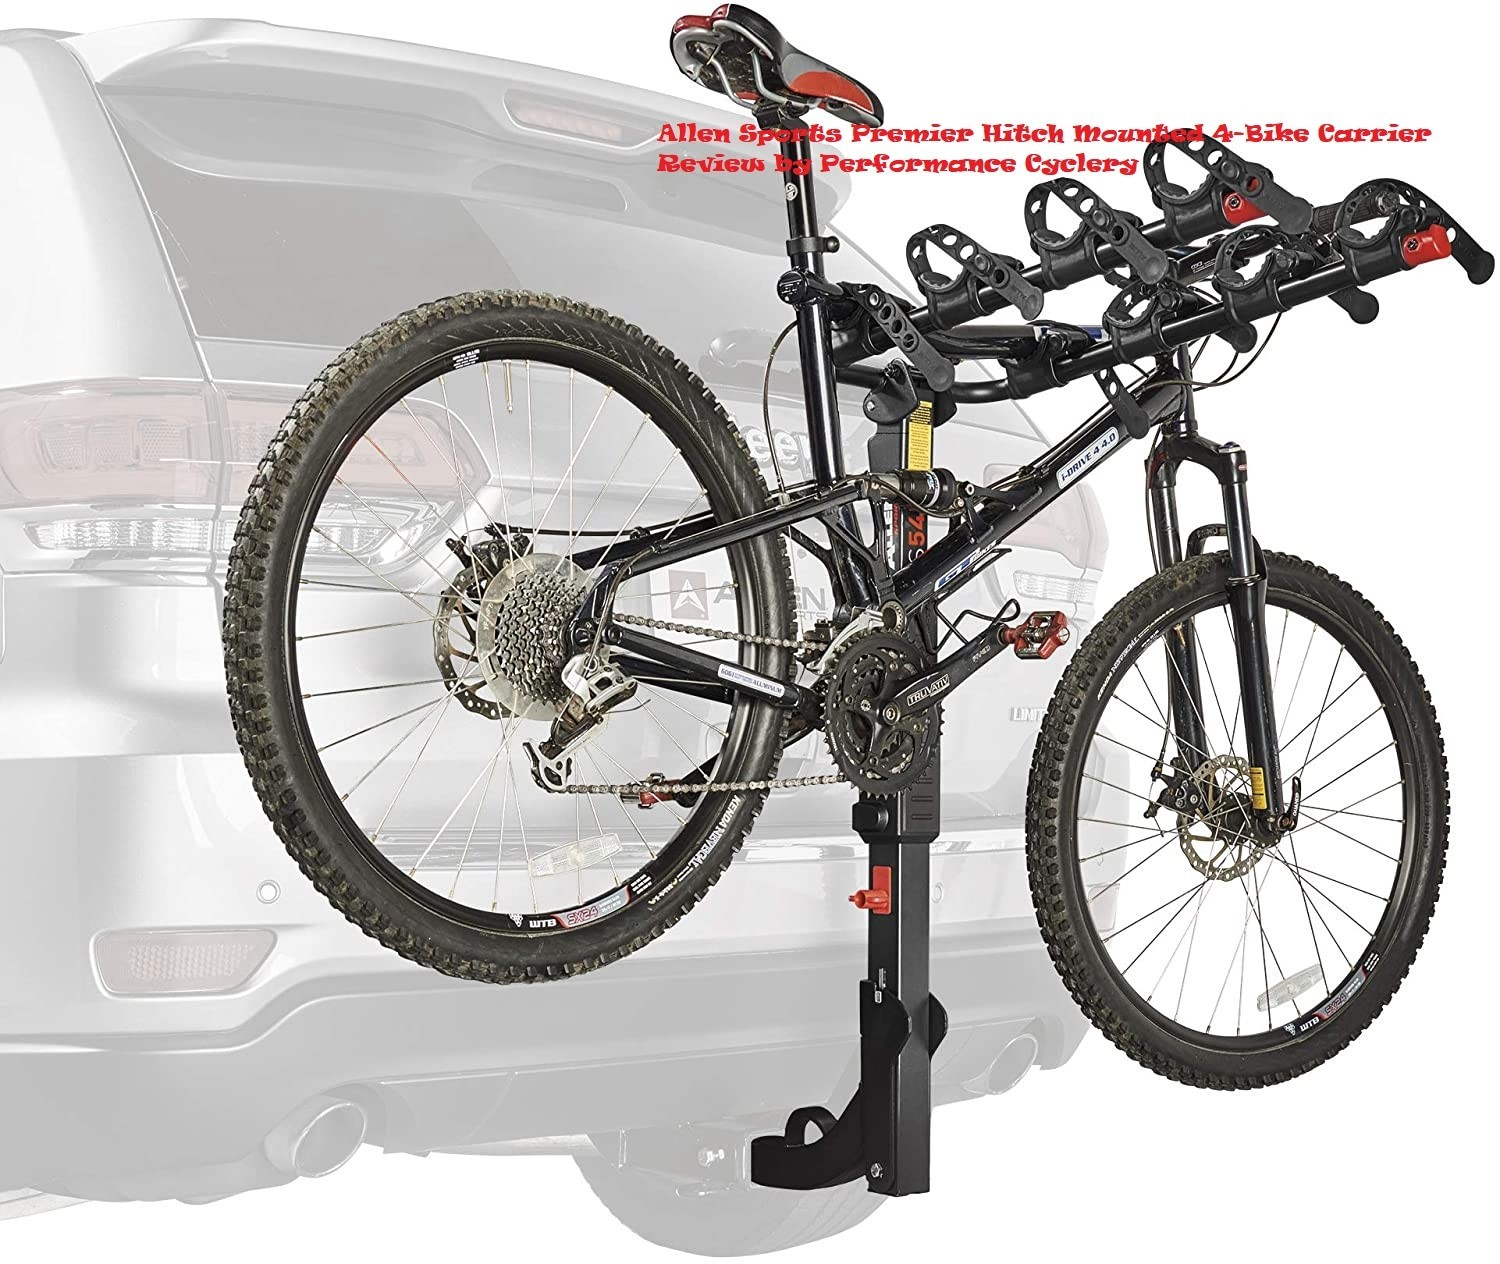 Allen Sports Premier Hitch Mounted 4-Bike Carrier Review by Performance Cyclery Shop